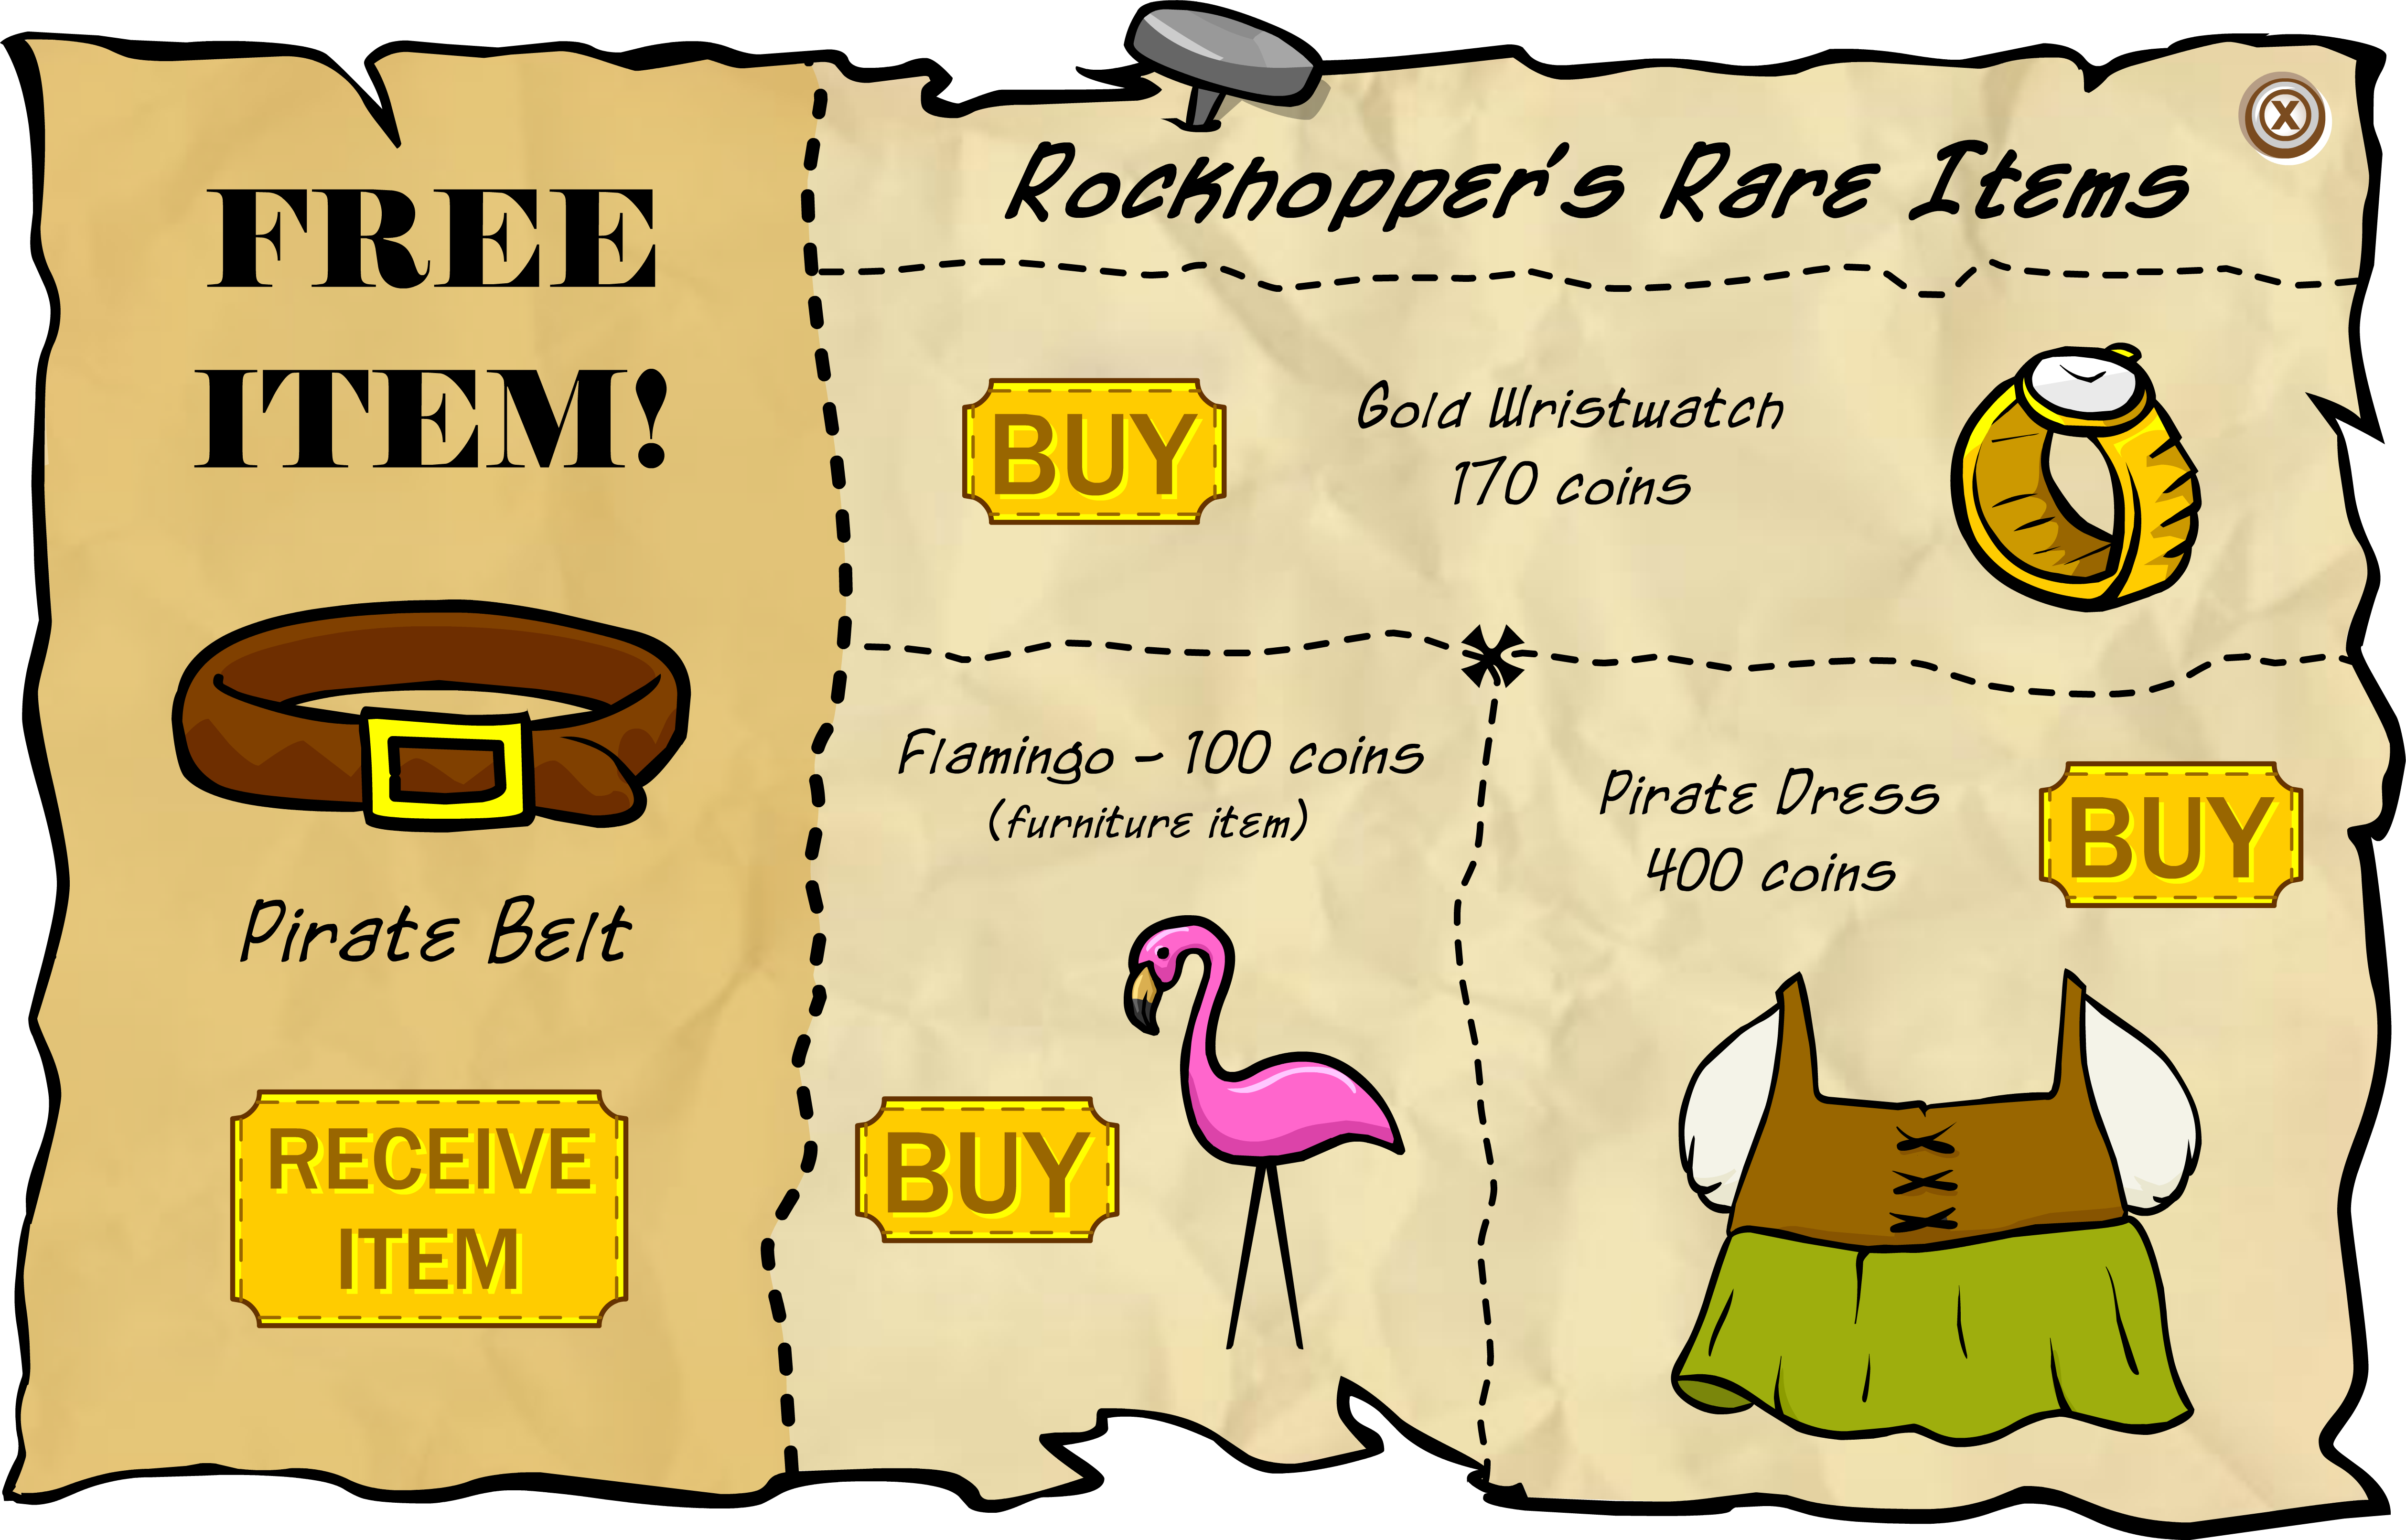 File:Rockhopper's Rare Items February 2007.png